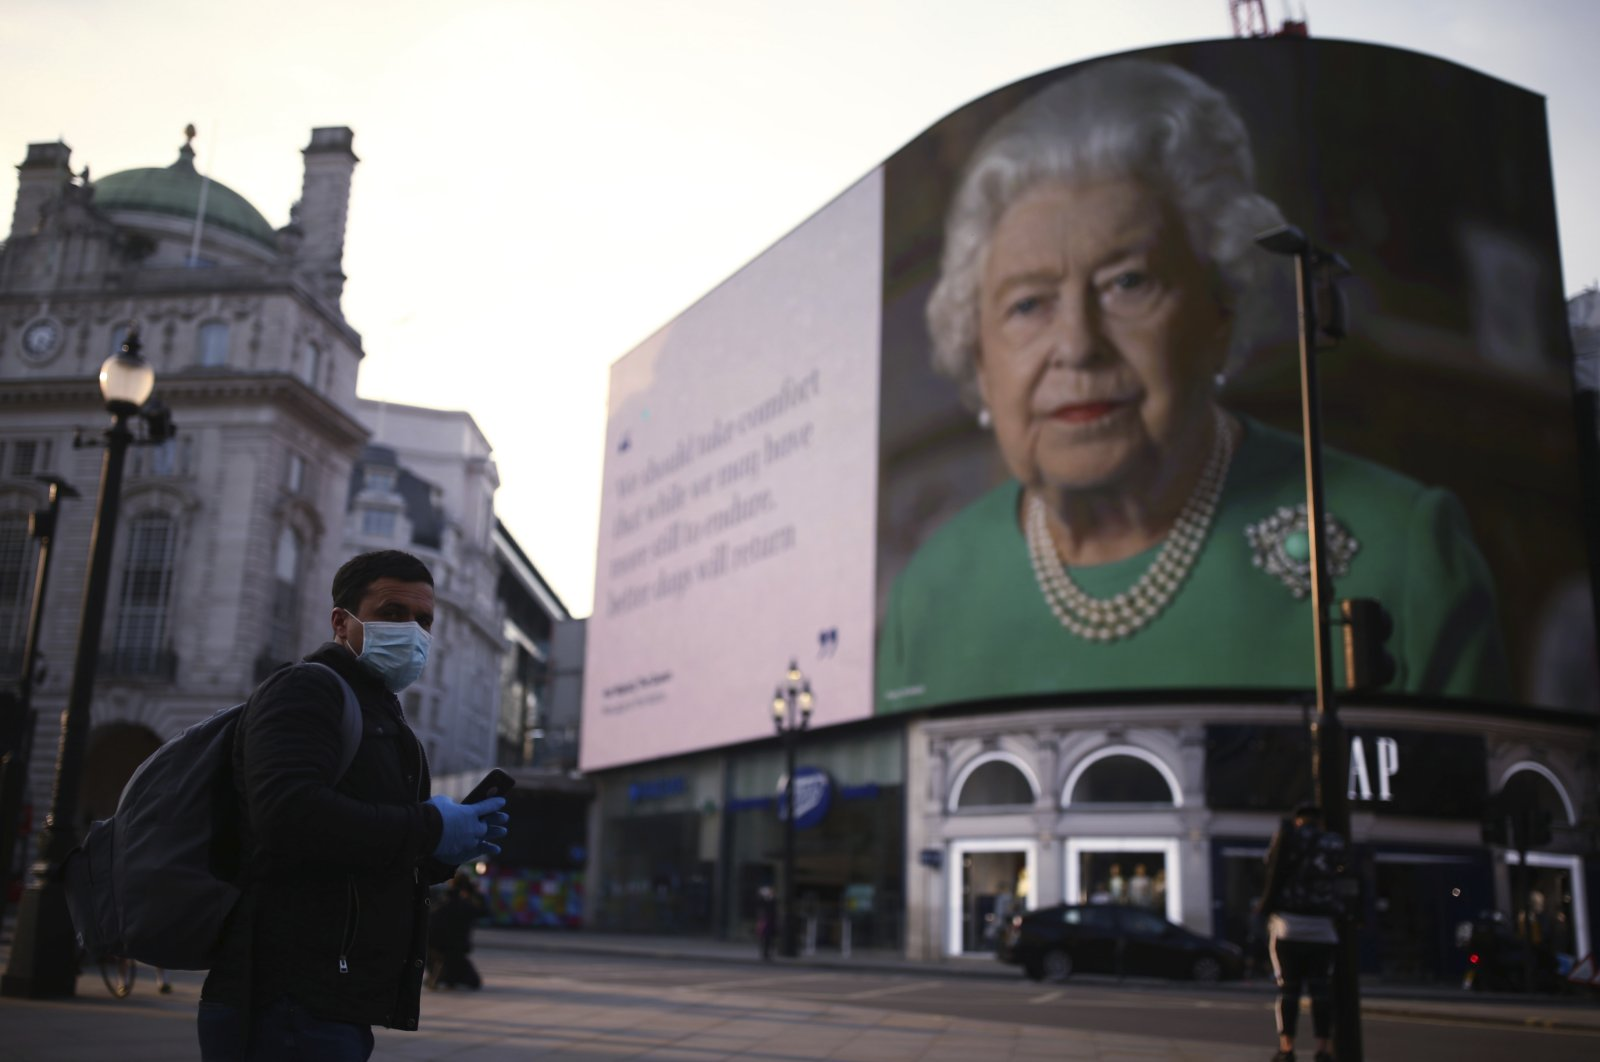 An image of Queen Elizabeth II and quotes from her historic TV broadcast commenting on the coronavirus epidemic are displayed at Piccadilly Circus in London, April 8, 2020. (AP Photo)